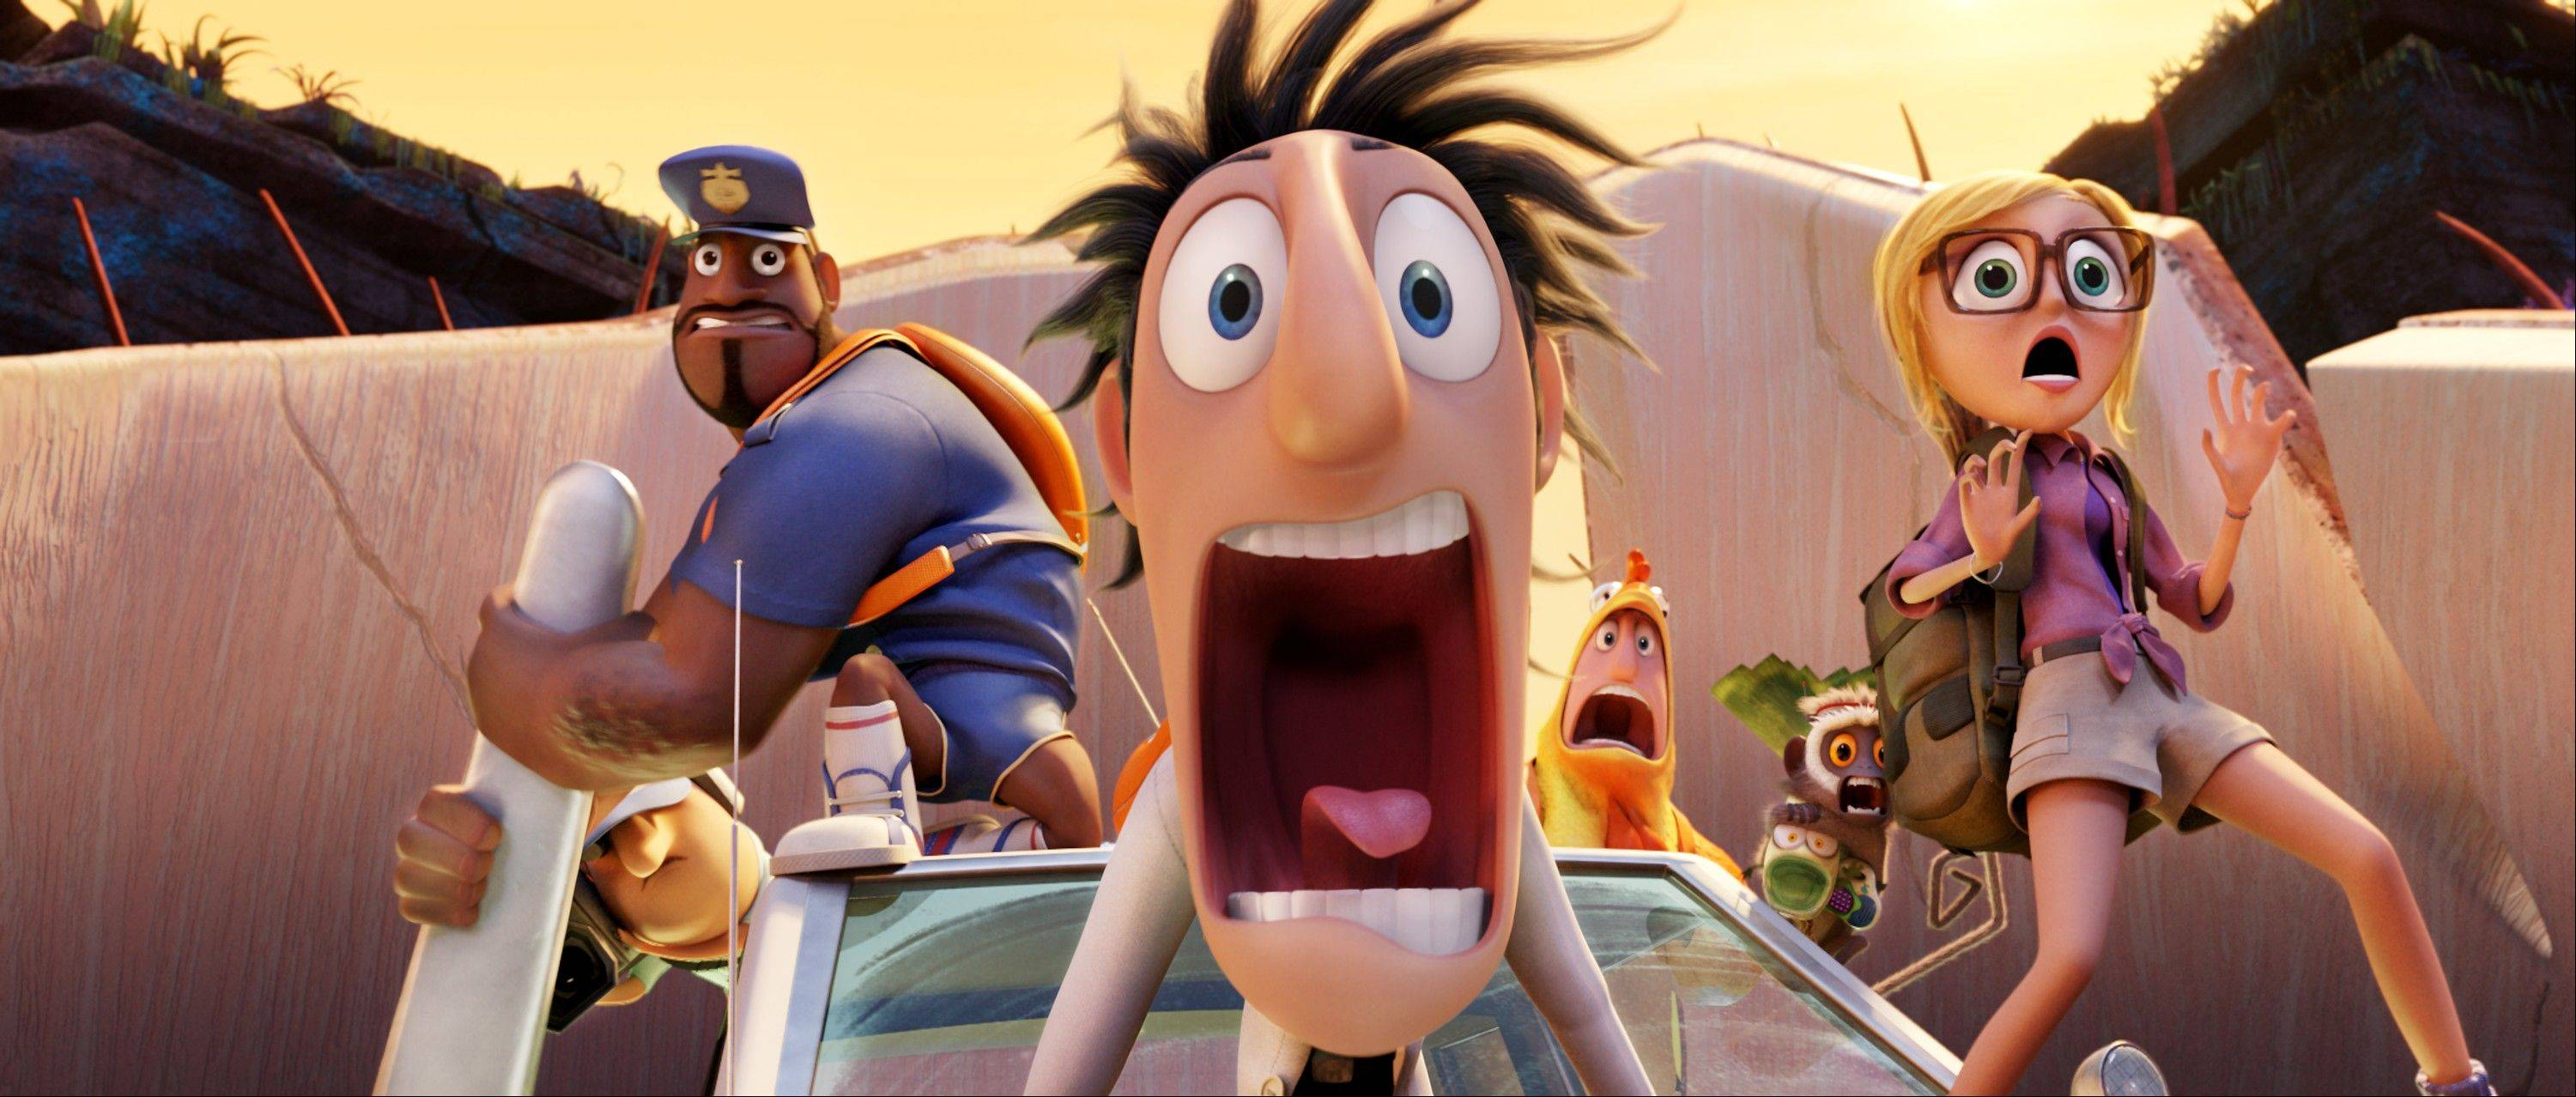 This film image released by Sony Pictures Animation shows characters, from left, Earl, voiced by Terry Crews, Flint, voiced by Bill Hader, and Sam, voiced by Anna Faris in a scene from �Cloudy with a Chance of Meatballs.� The animated sequel brought in $35 million in its first weekend of release.